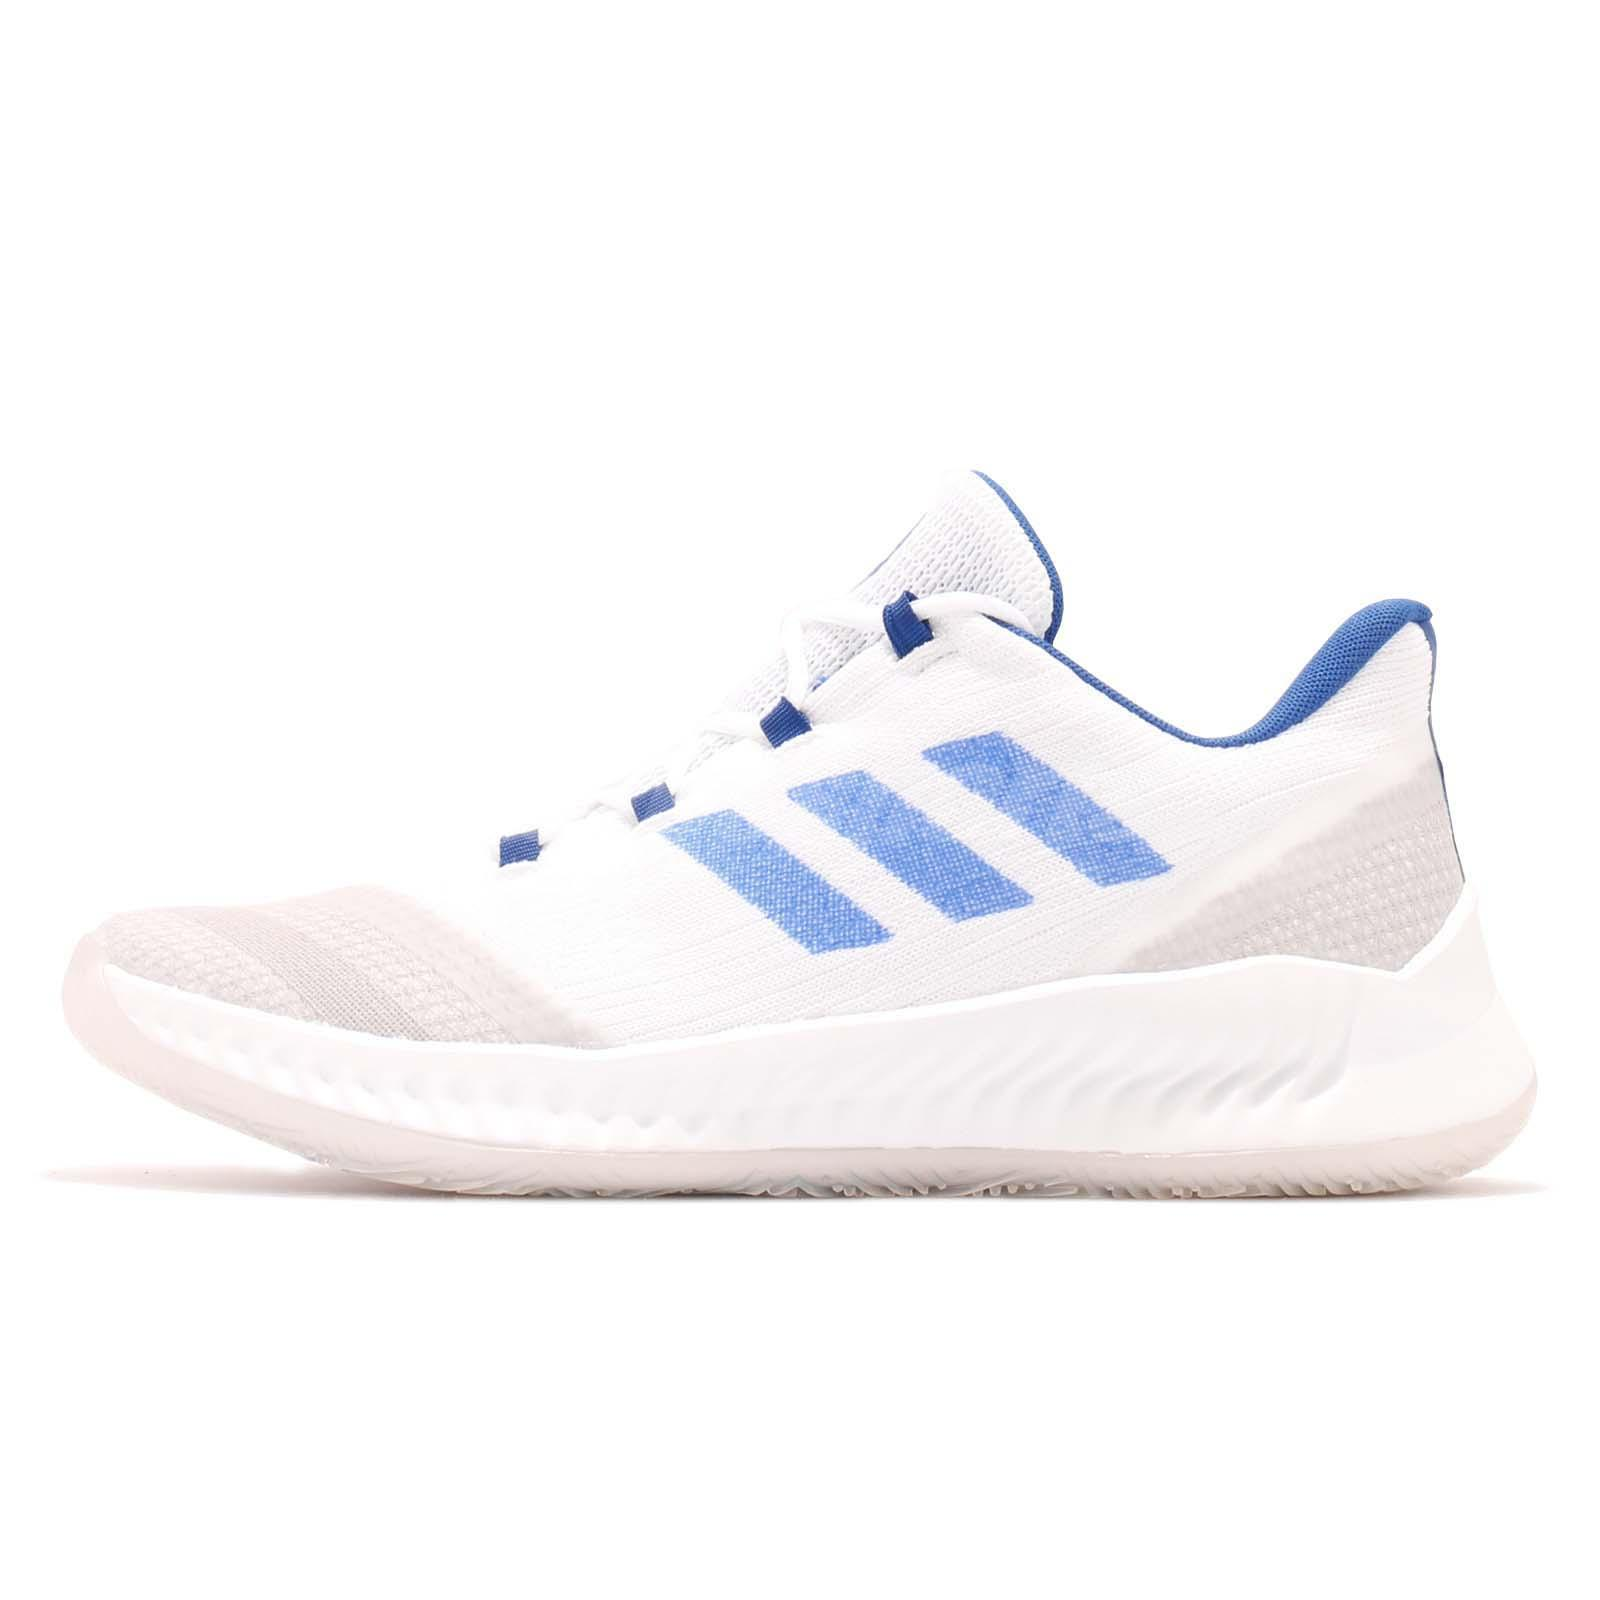 finest selection 06edc fc045 adidas Harden B E 2 II James White Blue Grey Men Basketball Shoes Sneaker  BB7672